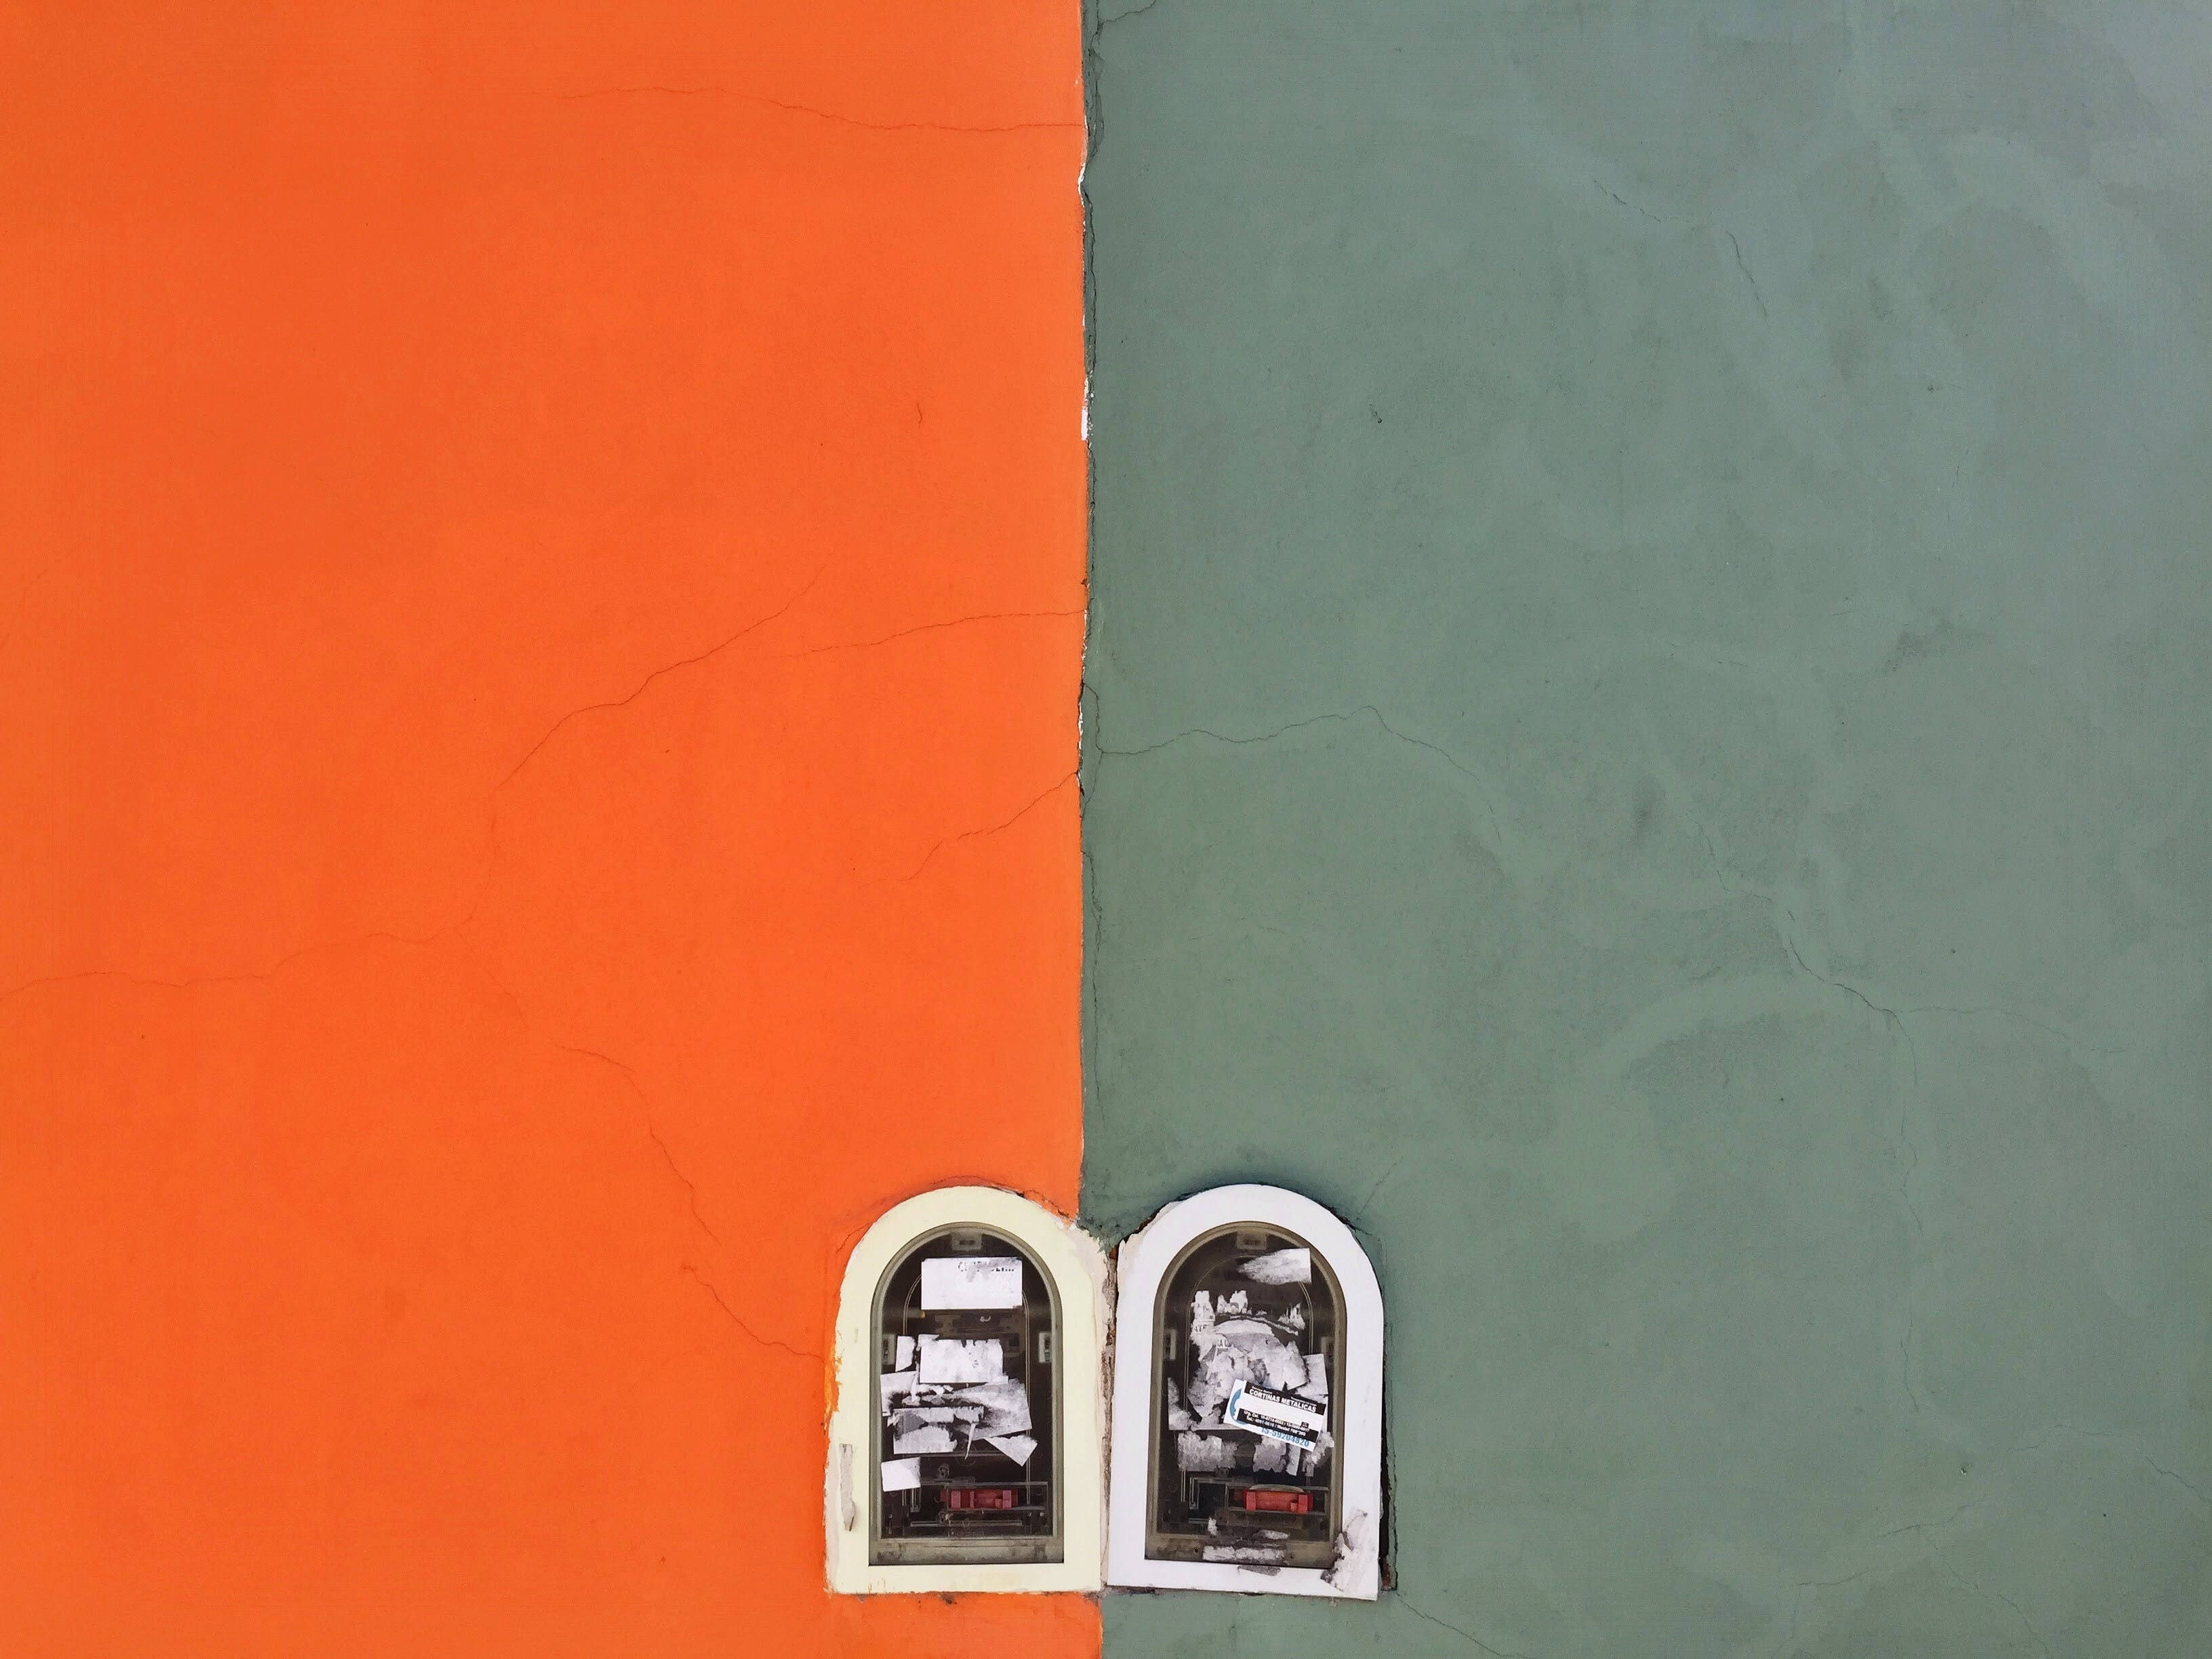 top view photography of orange and gray painted wall